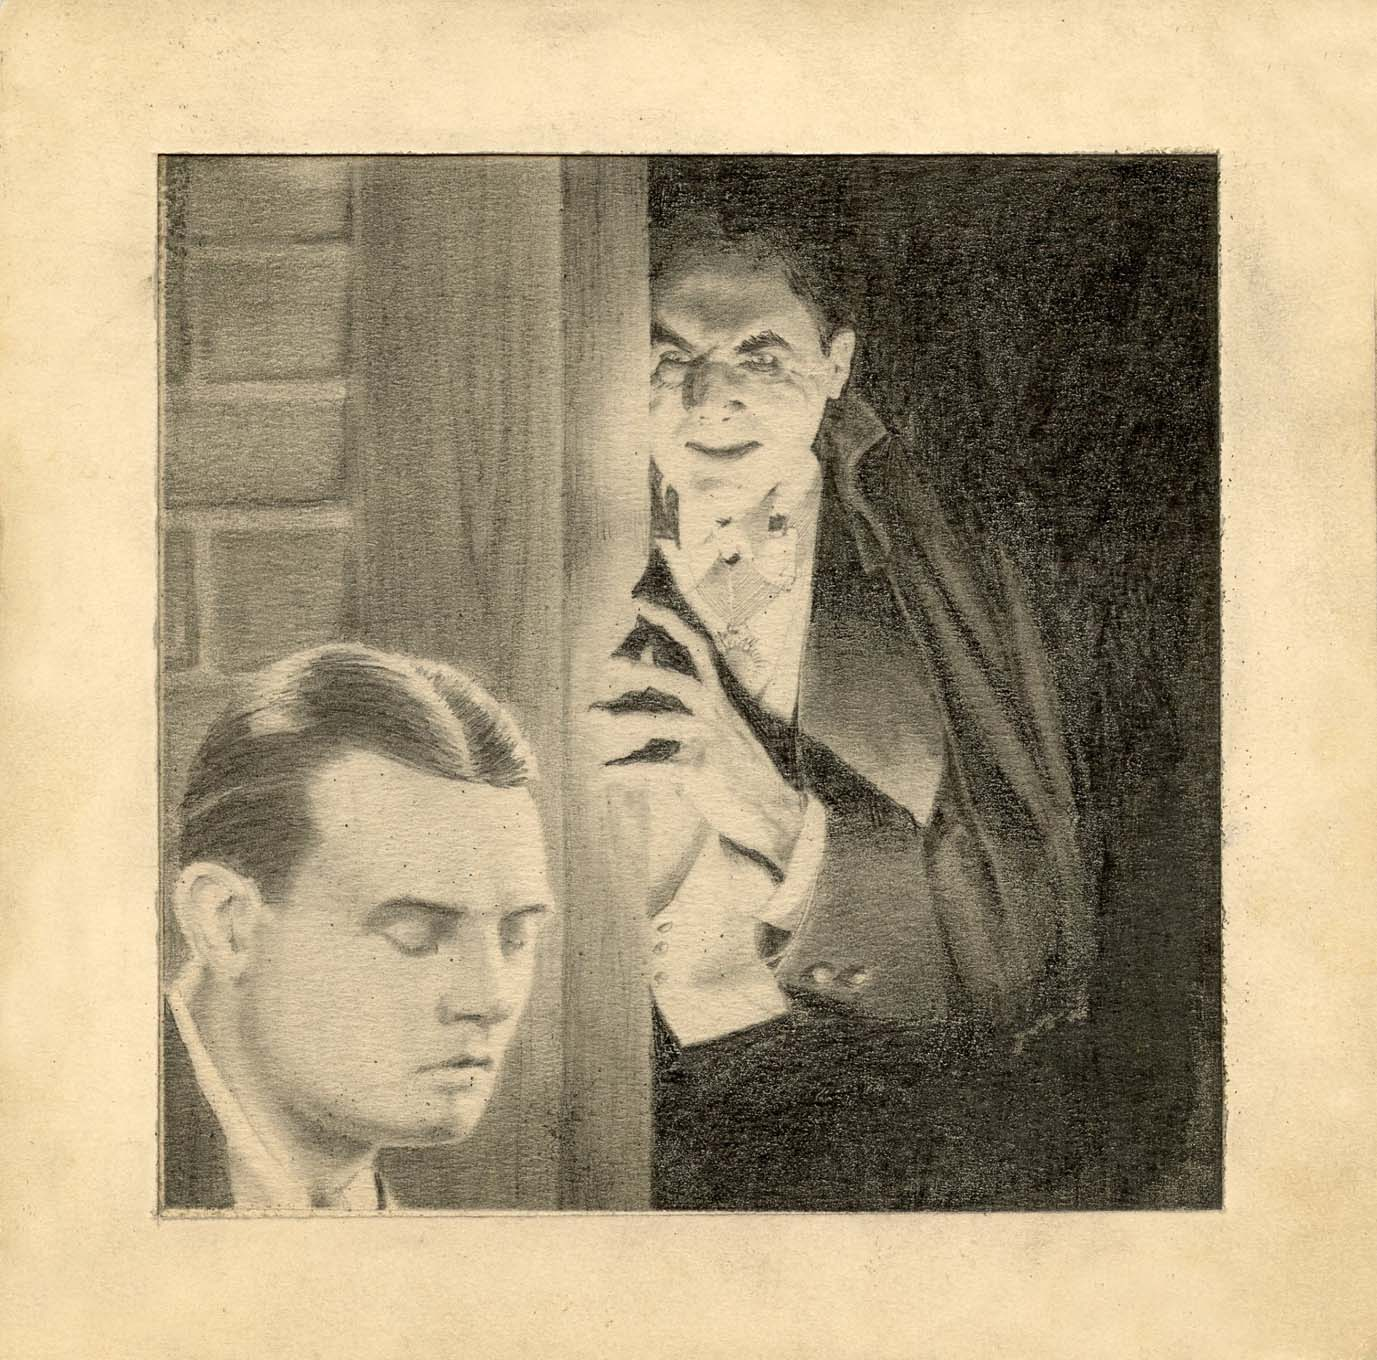 While attending the Art Center College of Design, Jodauga refined his pencil rendering techniques with this illustration of Bela Lugosi's Dracula. It was one of eight drawings that he did for a semester project.